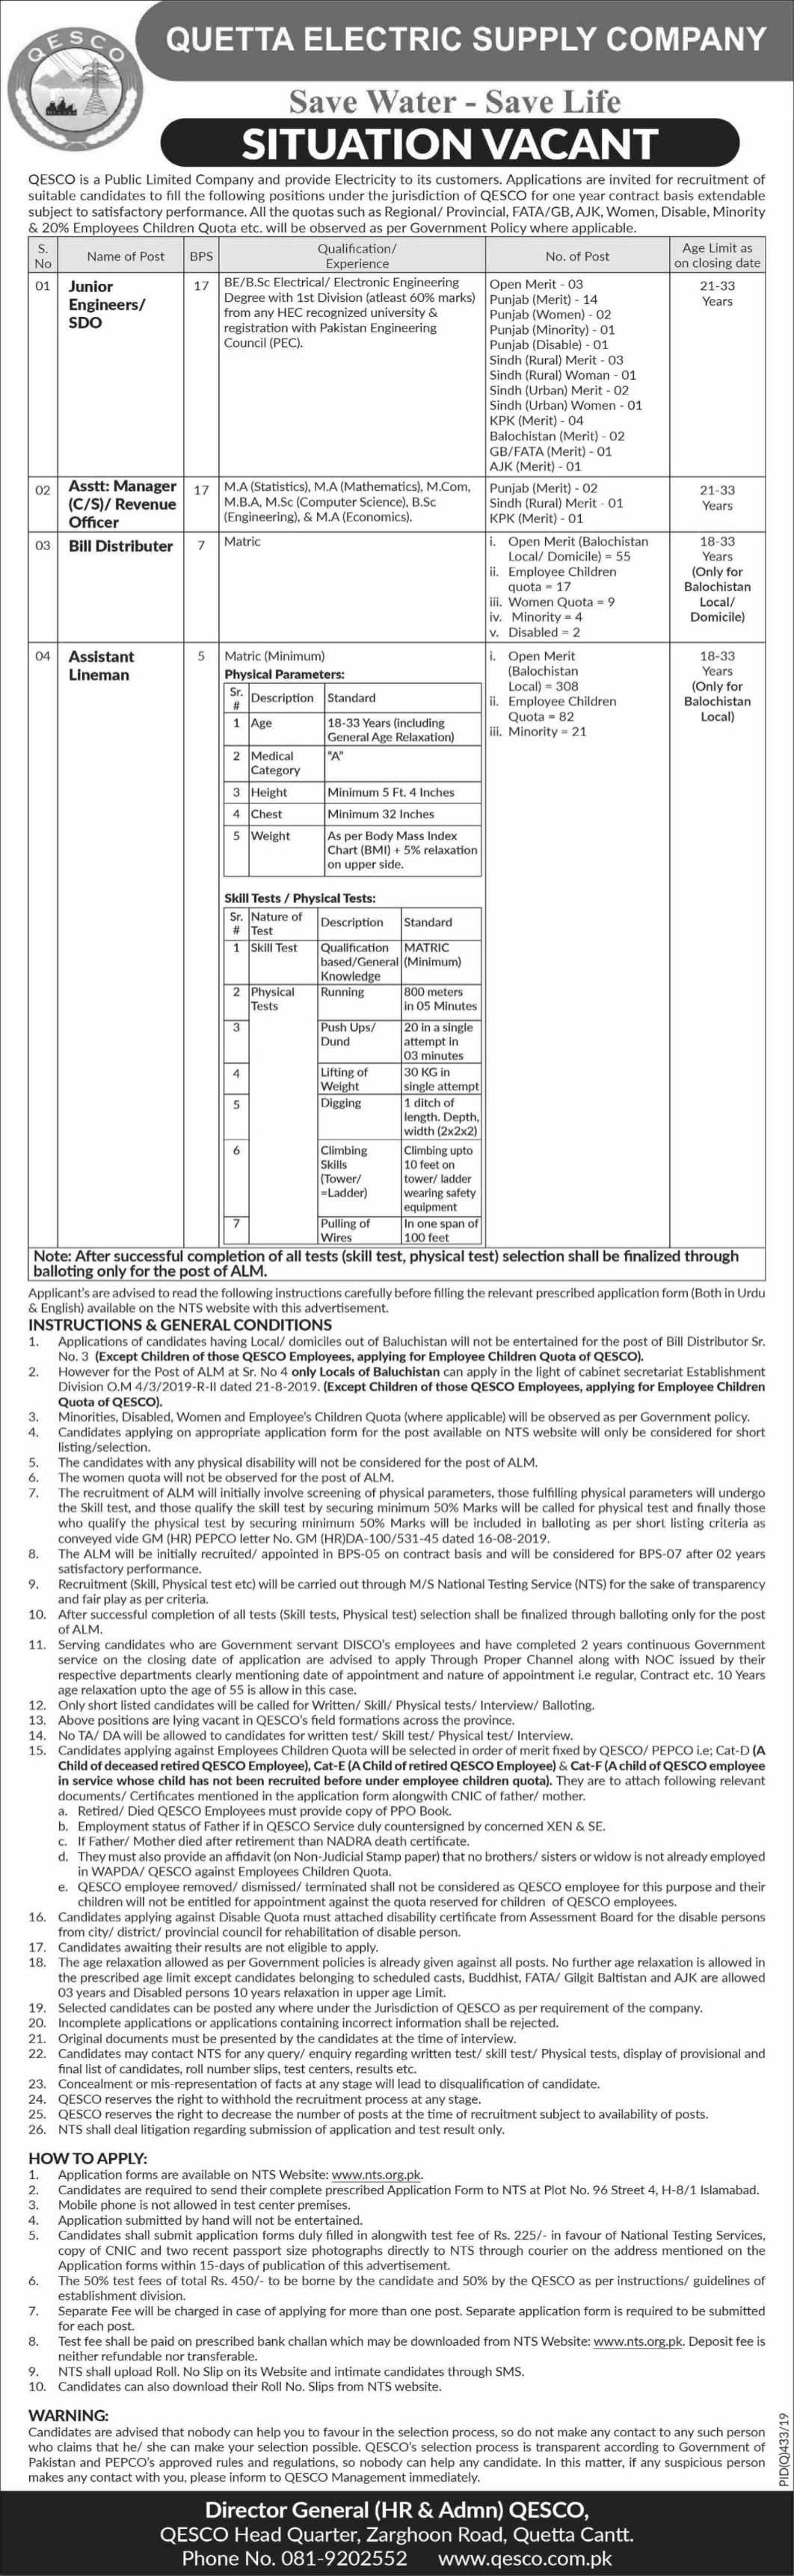 Quetta Electric supply company QESCO Jobs NTS Test Roll Number Slip